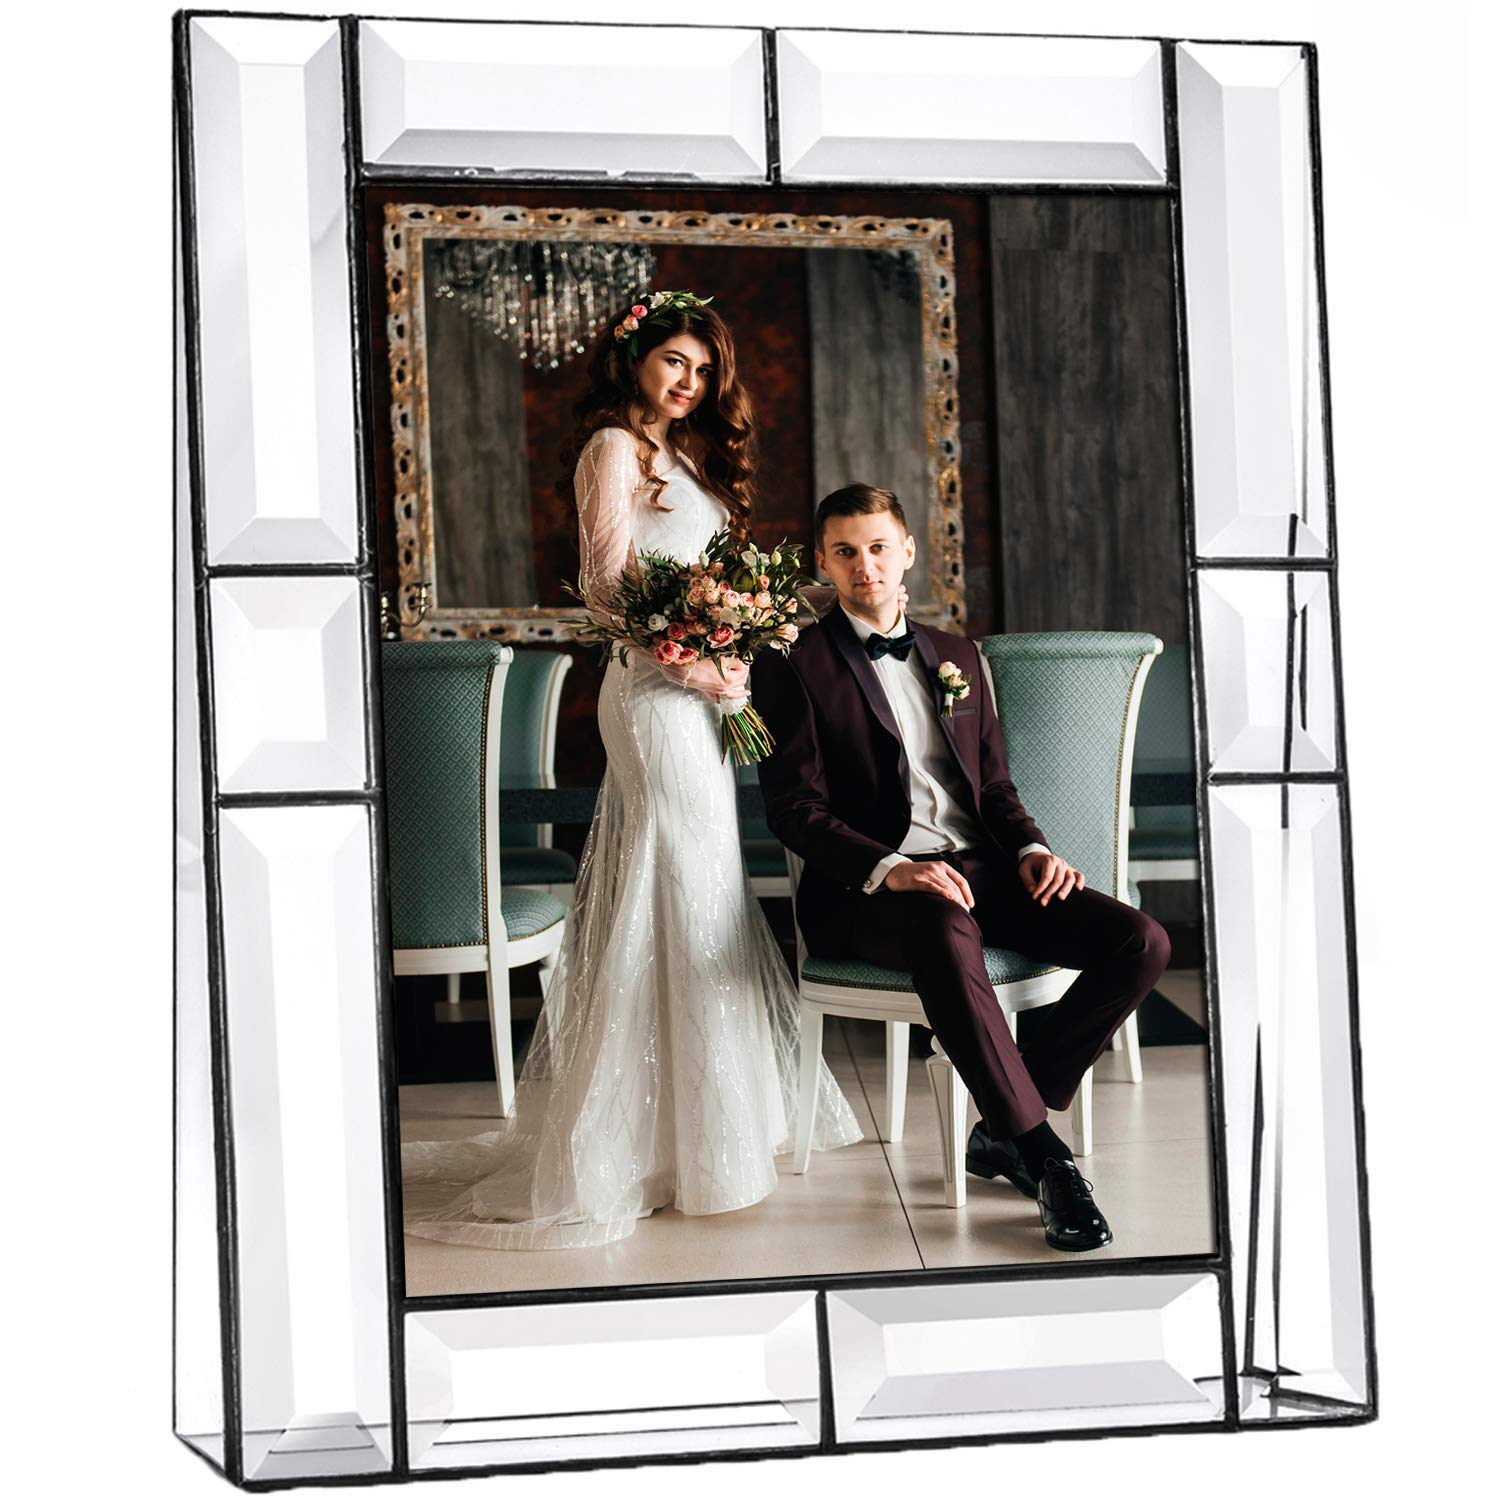 Clear Glass Picture Frame 8x10 Photo Display Desk Accessories Tabletop Home Decor Family Wedding Anniversary Engagement Graduation Gift J Devlin Pic 112 Series Buy Online In Gibraltar At Gibraltar Desertcart Com Productid 11423178